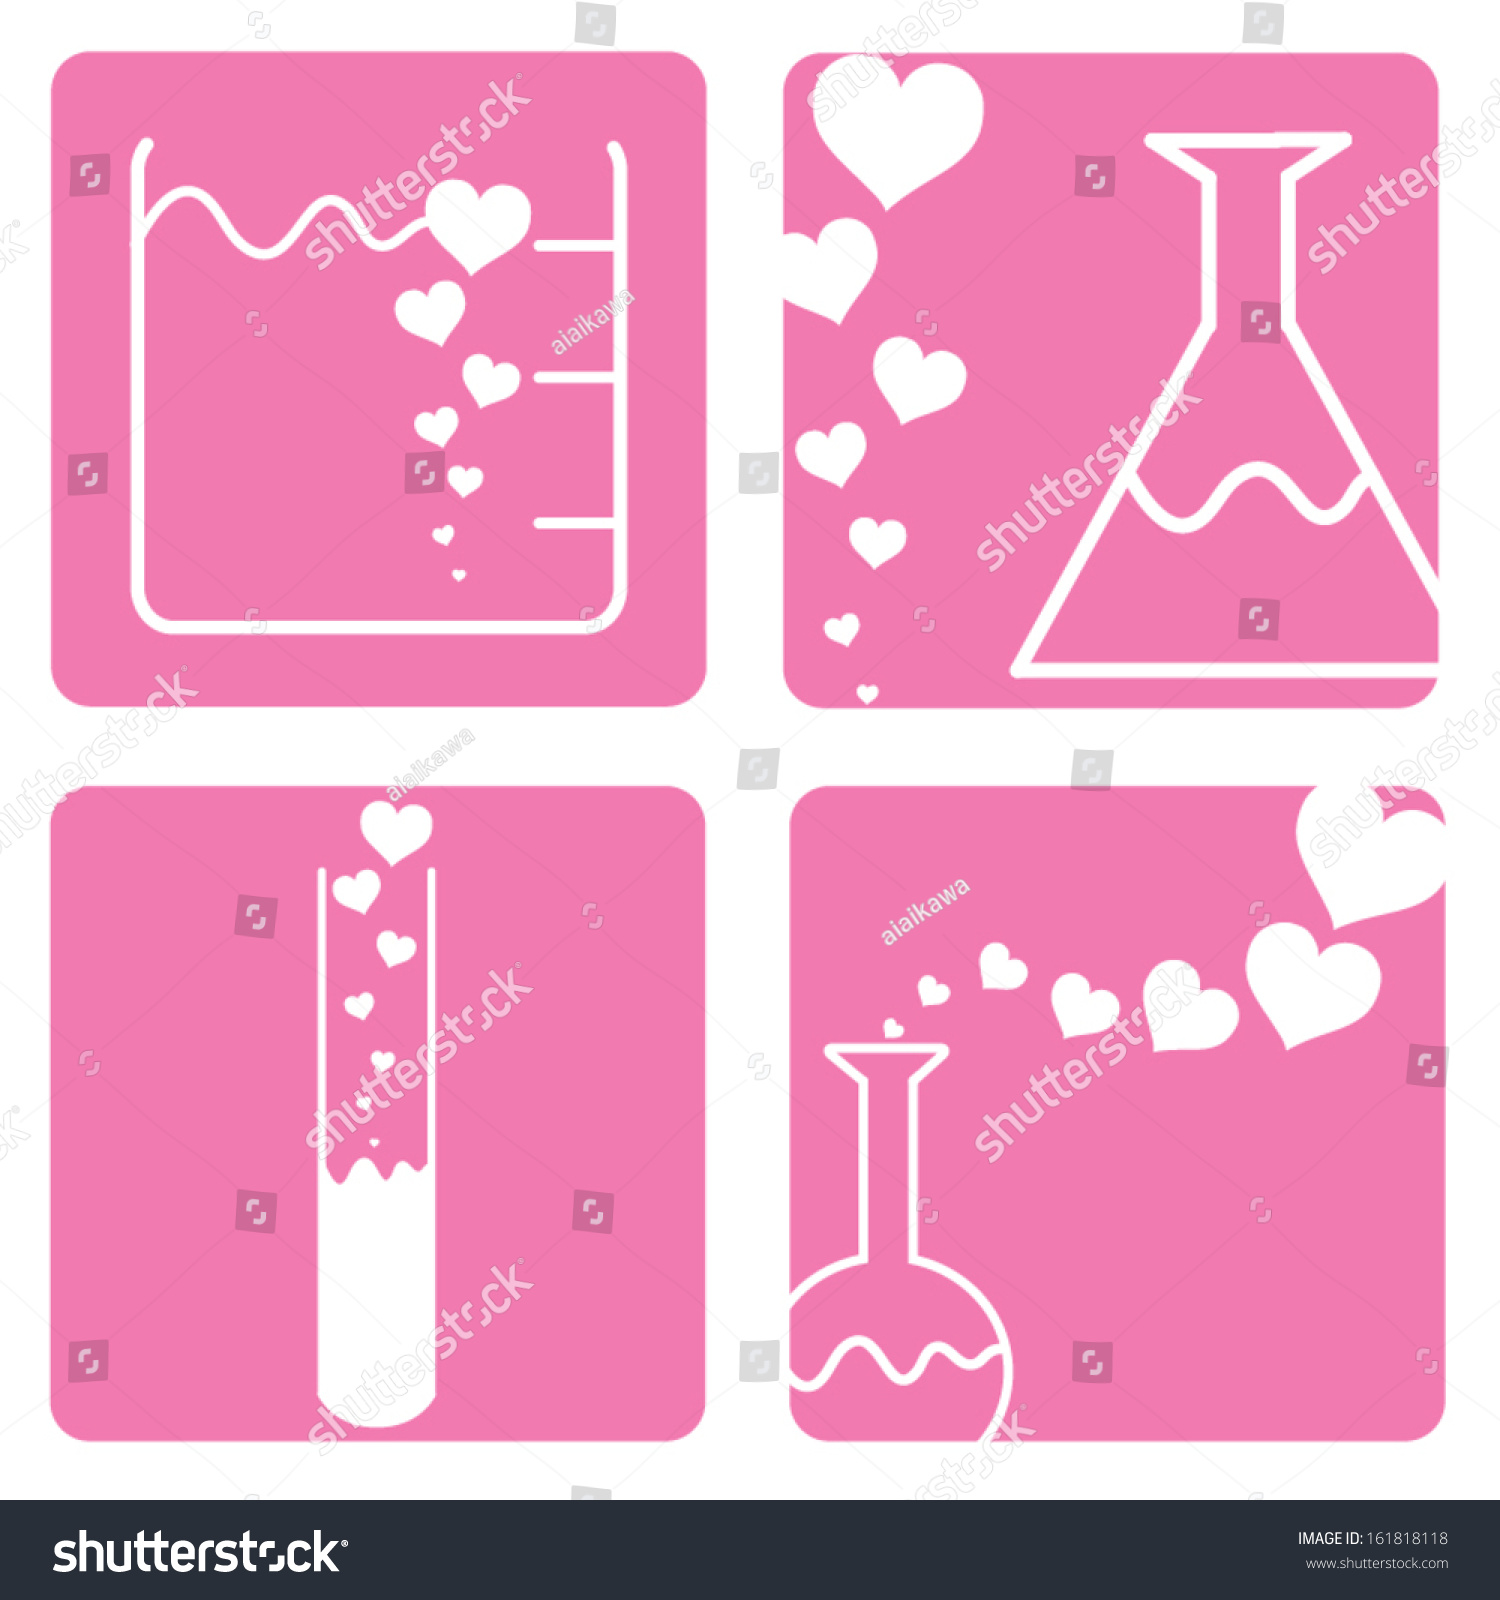 225ed8b4a5eb Chemistry Laboratory Love Concept Flat Icon Stock Vector (Royalty ...